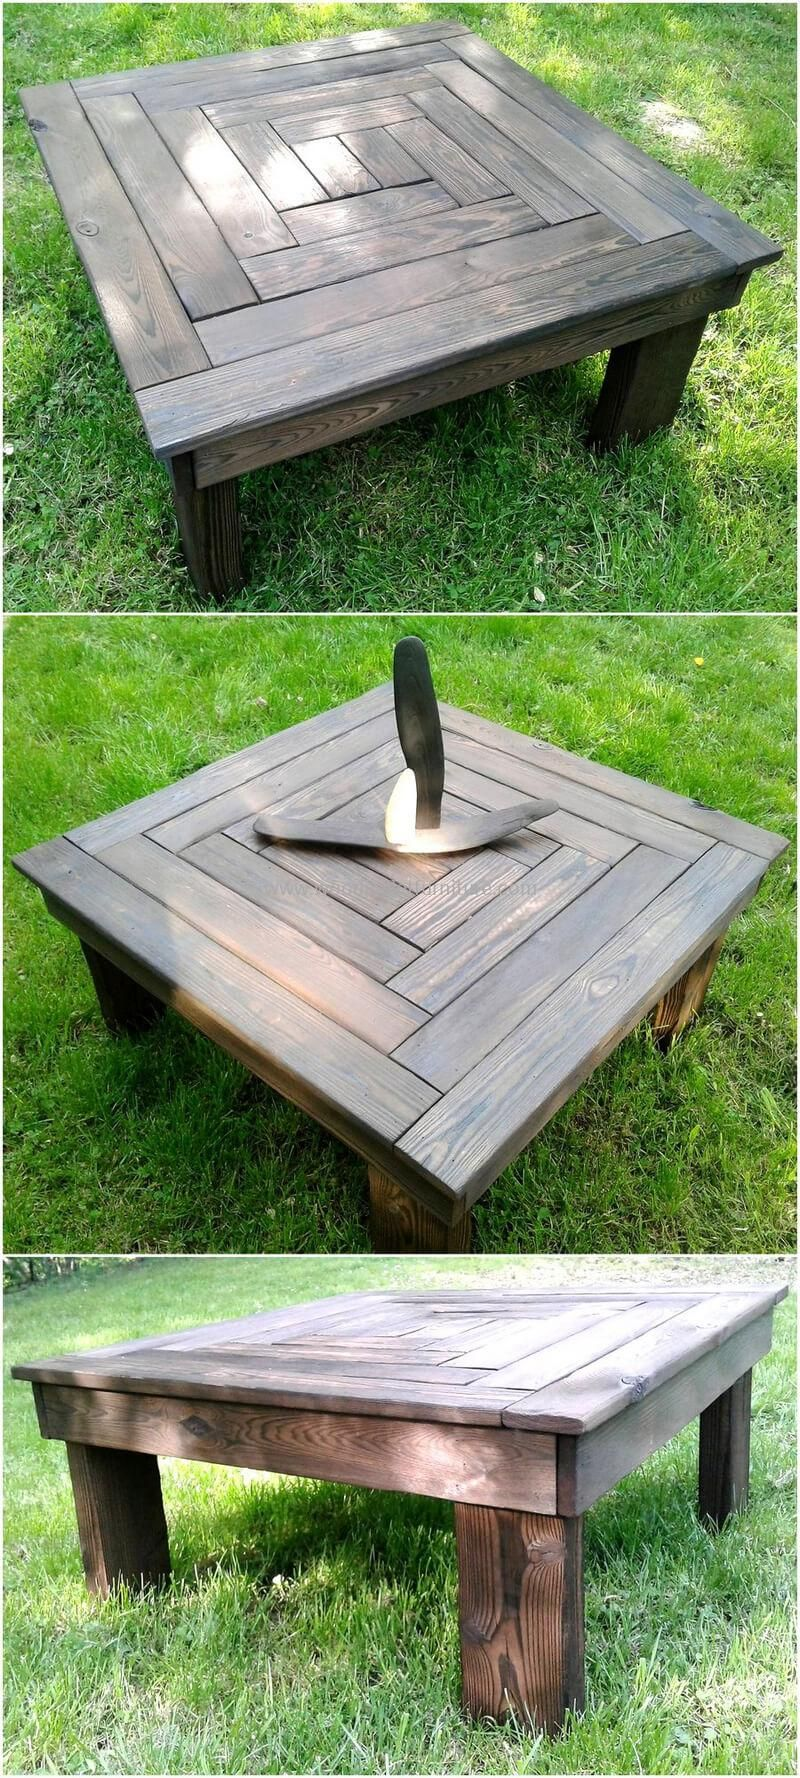 Awesome Creations With Used Wooden Pallets Refinish